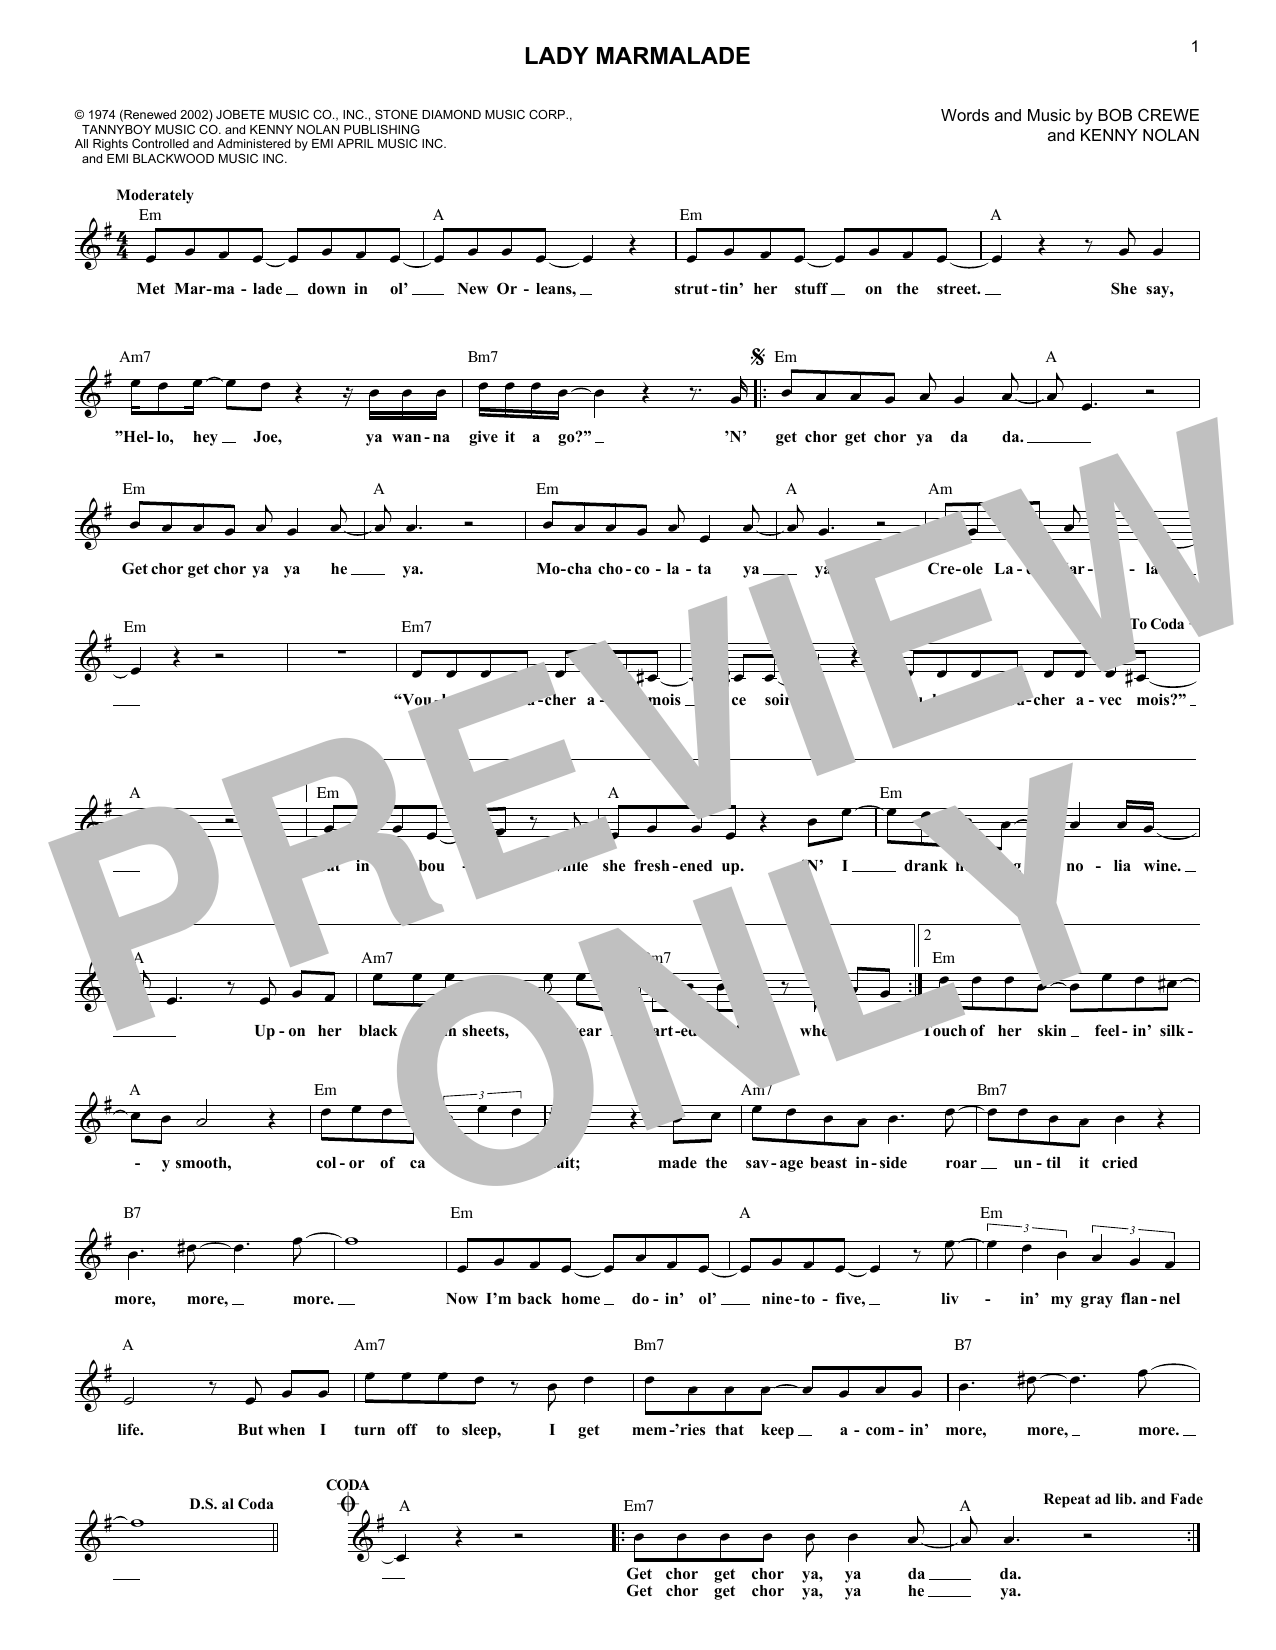 Patty LaBelle Lady Marmalade sheet music notes and chords. Download Printable PDF.